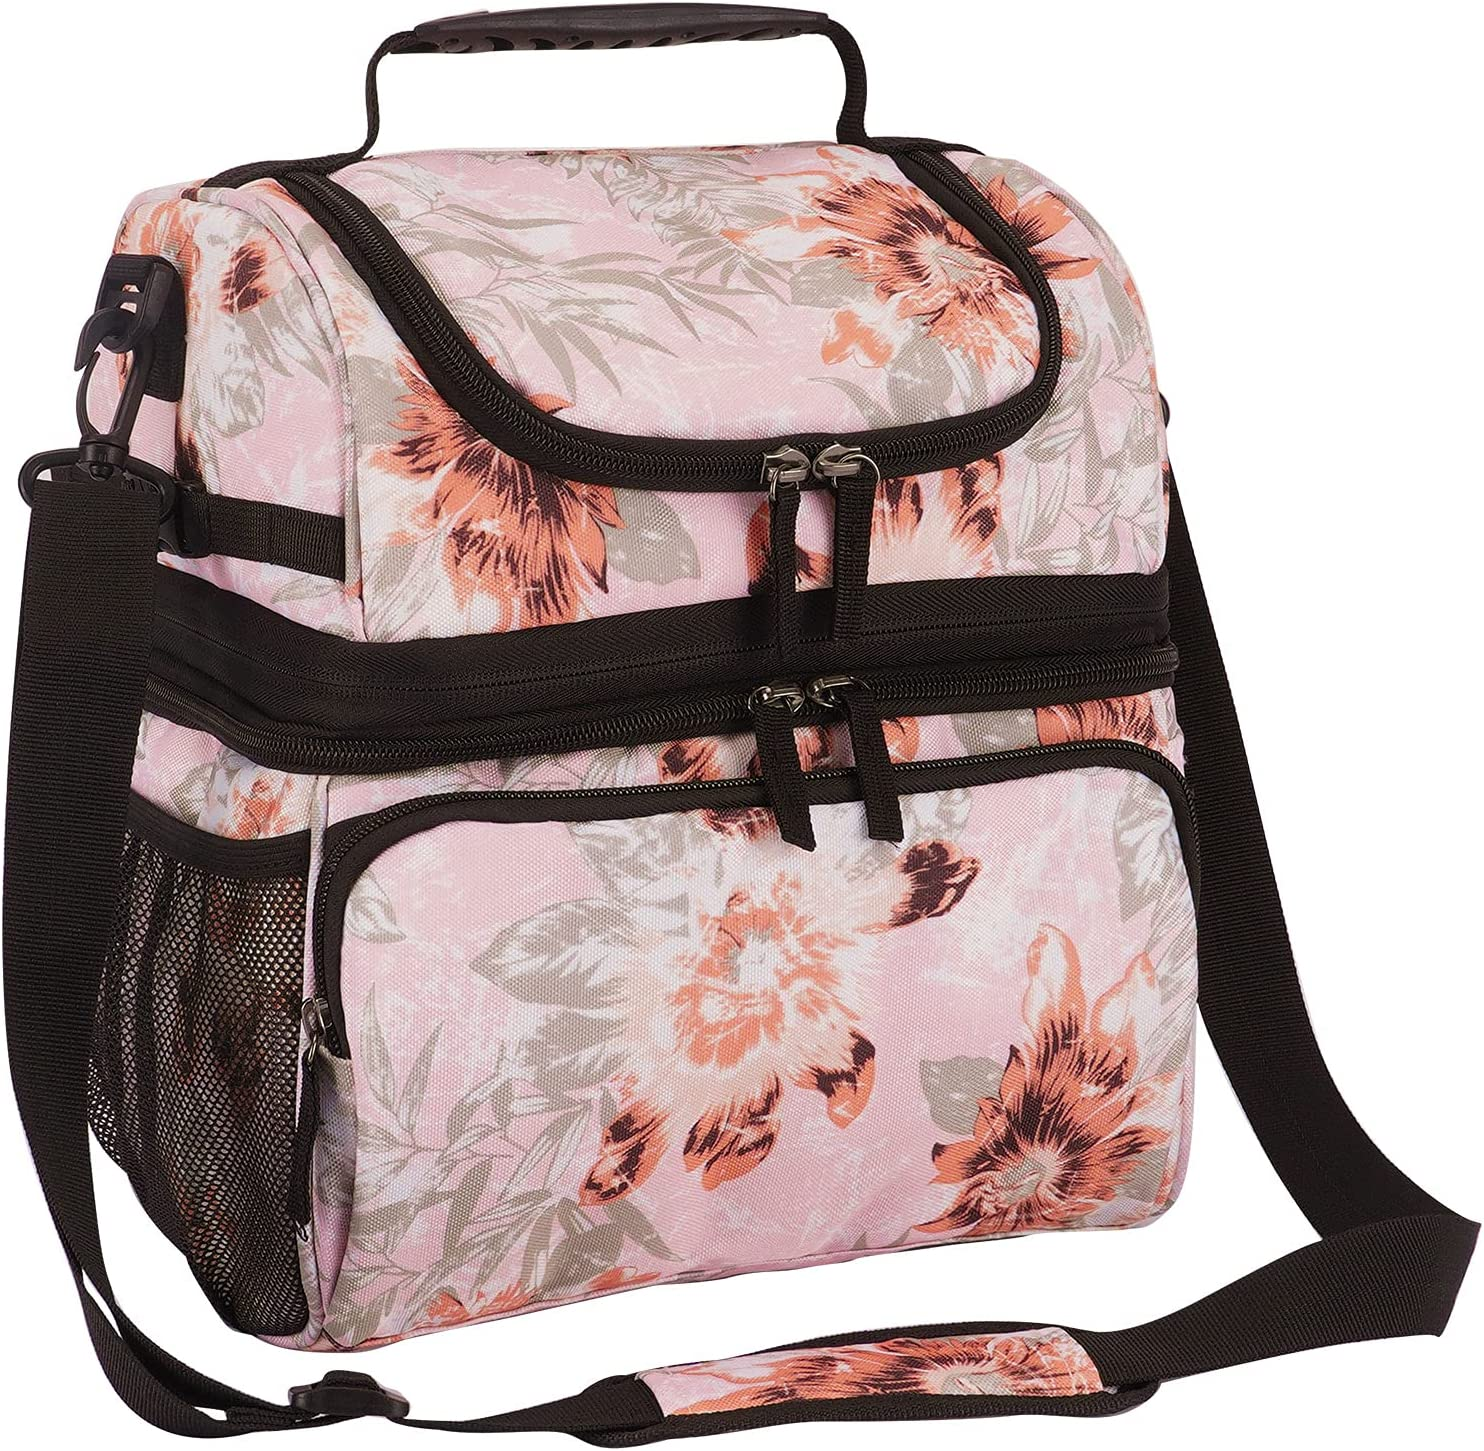 VENLING Insulated Lunch Bag for Women Men Expandable Dual Compartment Lunch Cooler Bag with Shoulder Strap Cooling Lunch Tote Floral Double Deck Lunch Box Womens Leakproof Reusable Lunch Pail, Pink